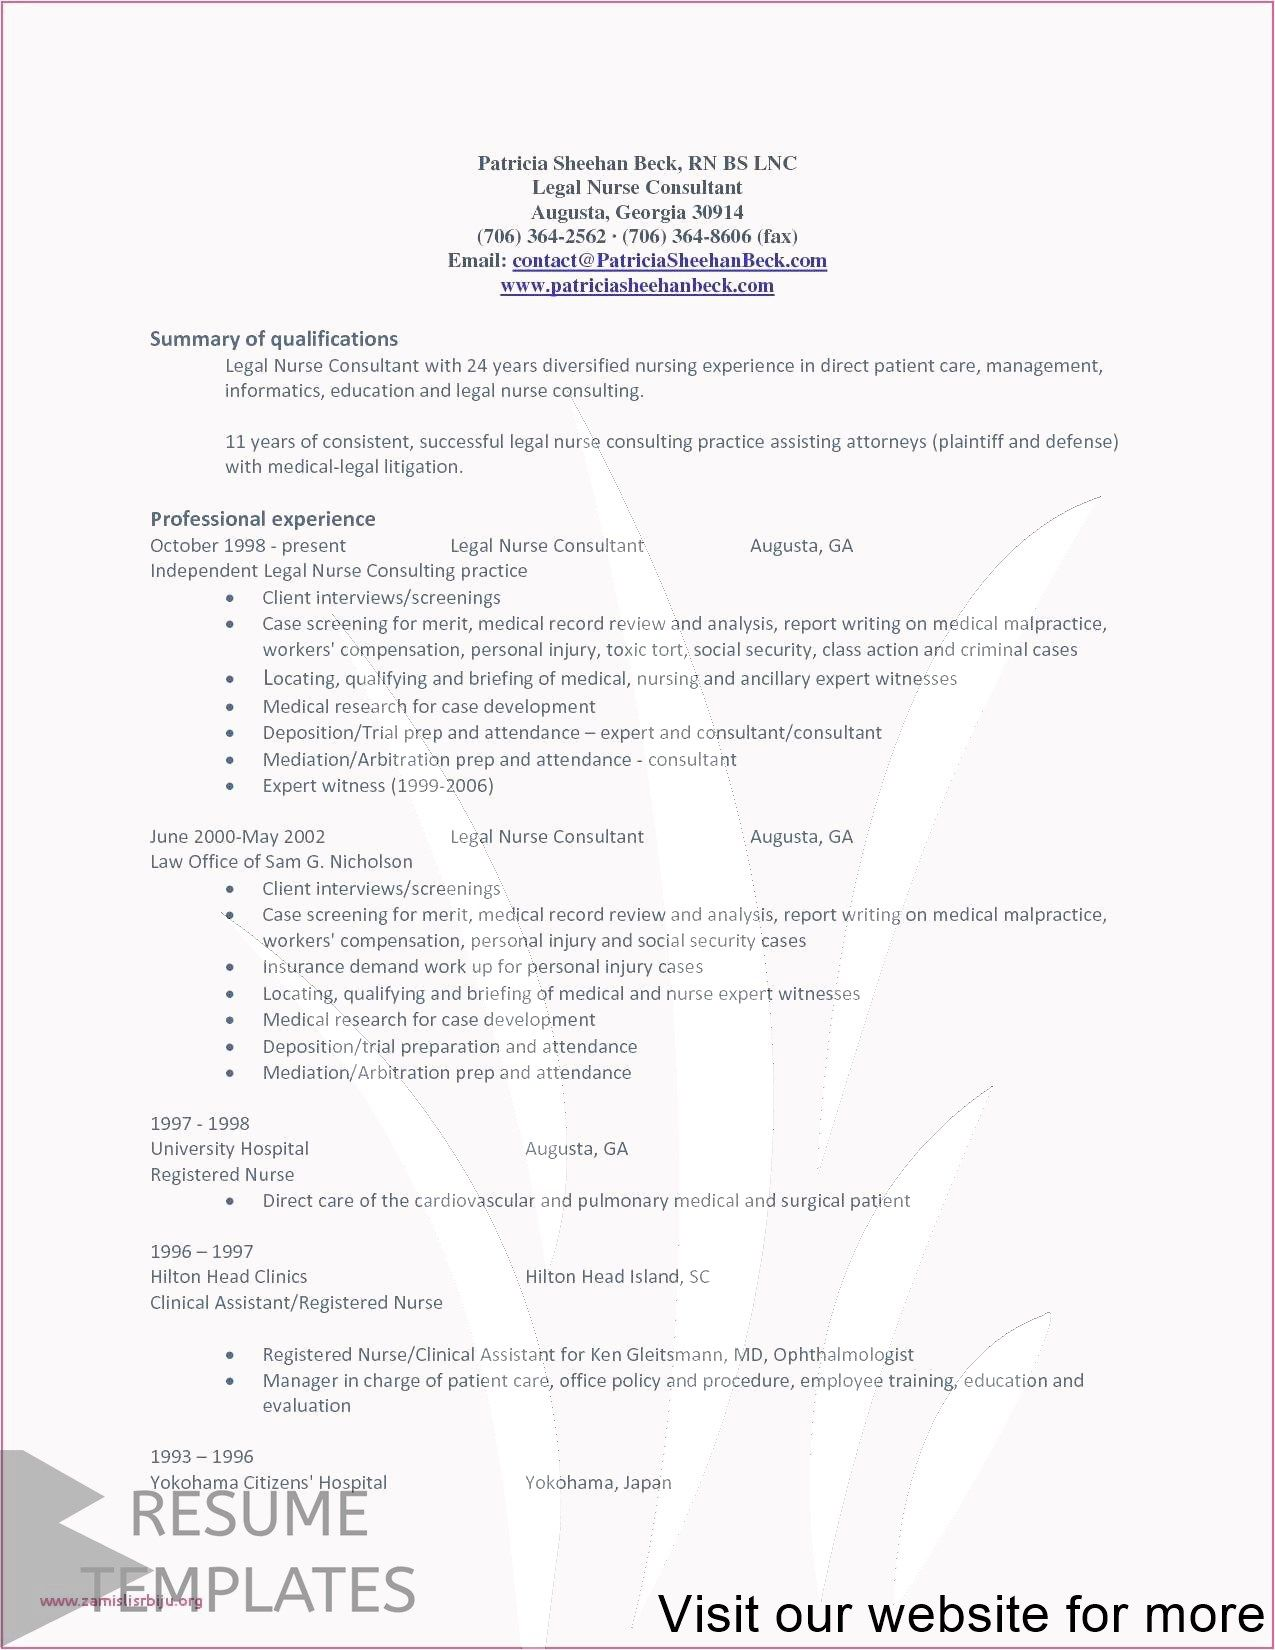 college student resume maker 2020 in 2020 Cover letter